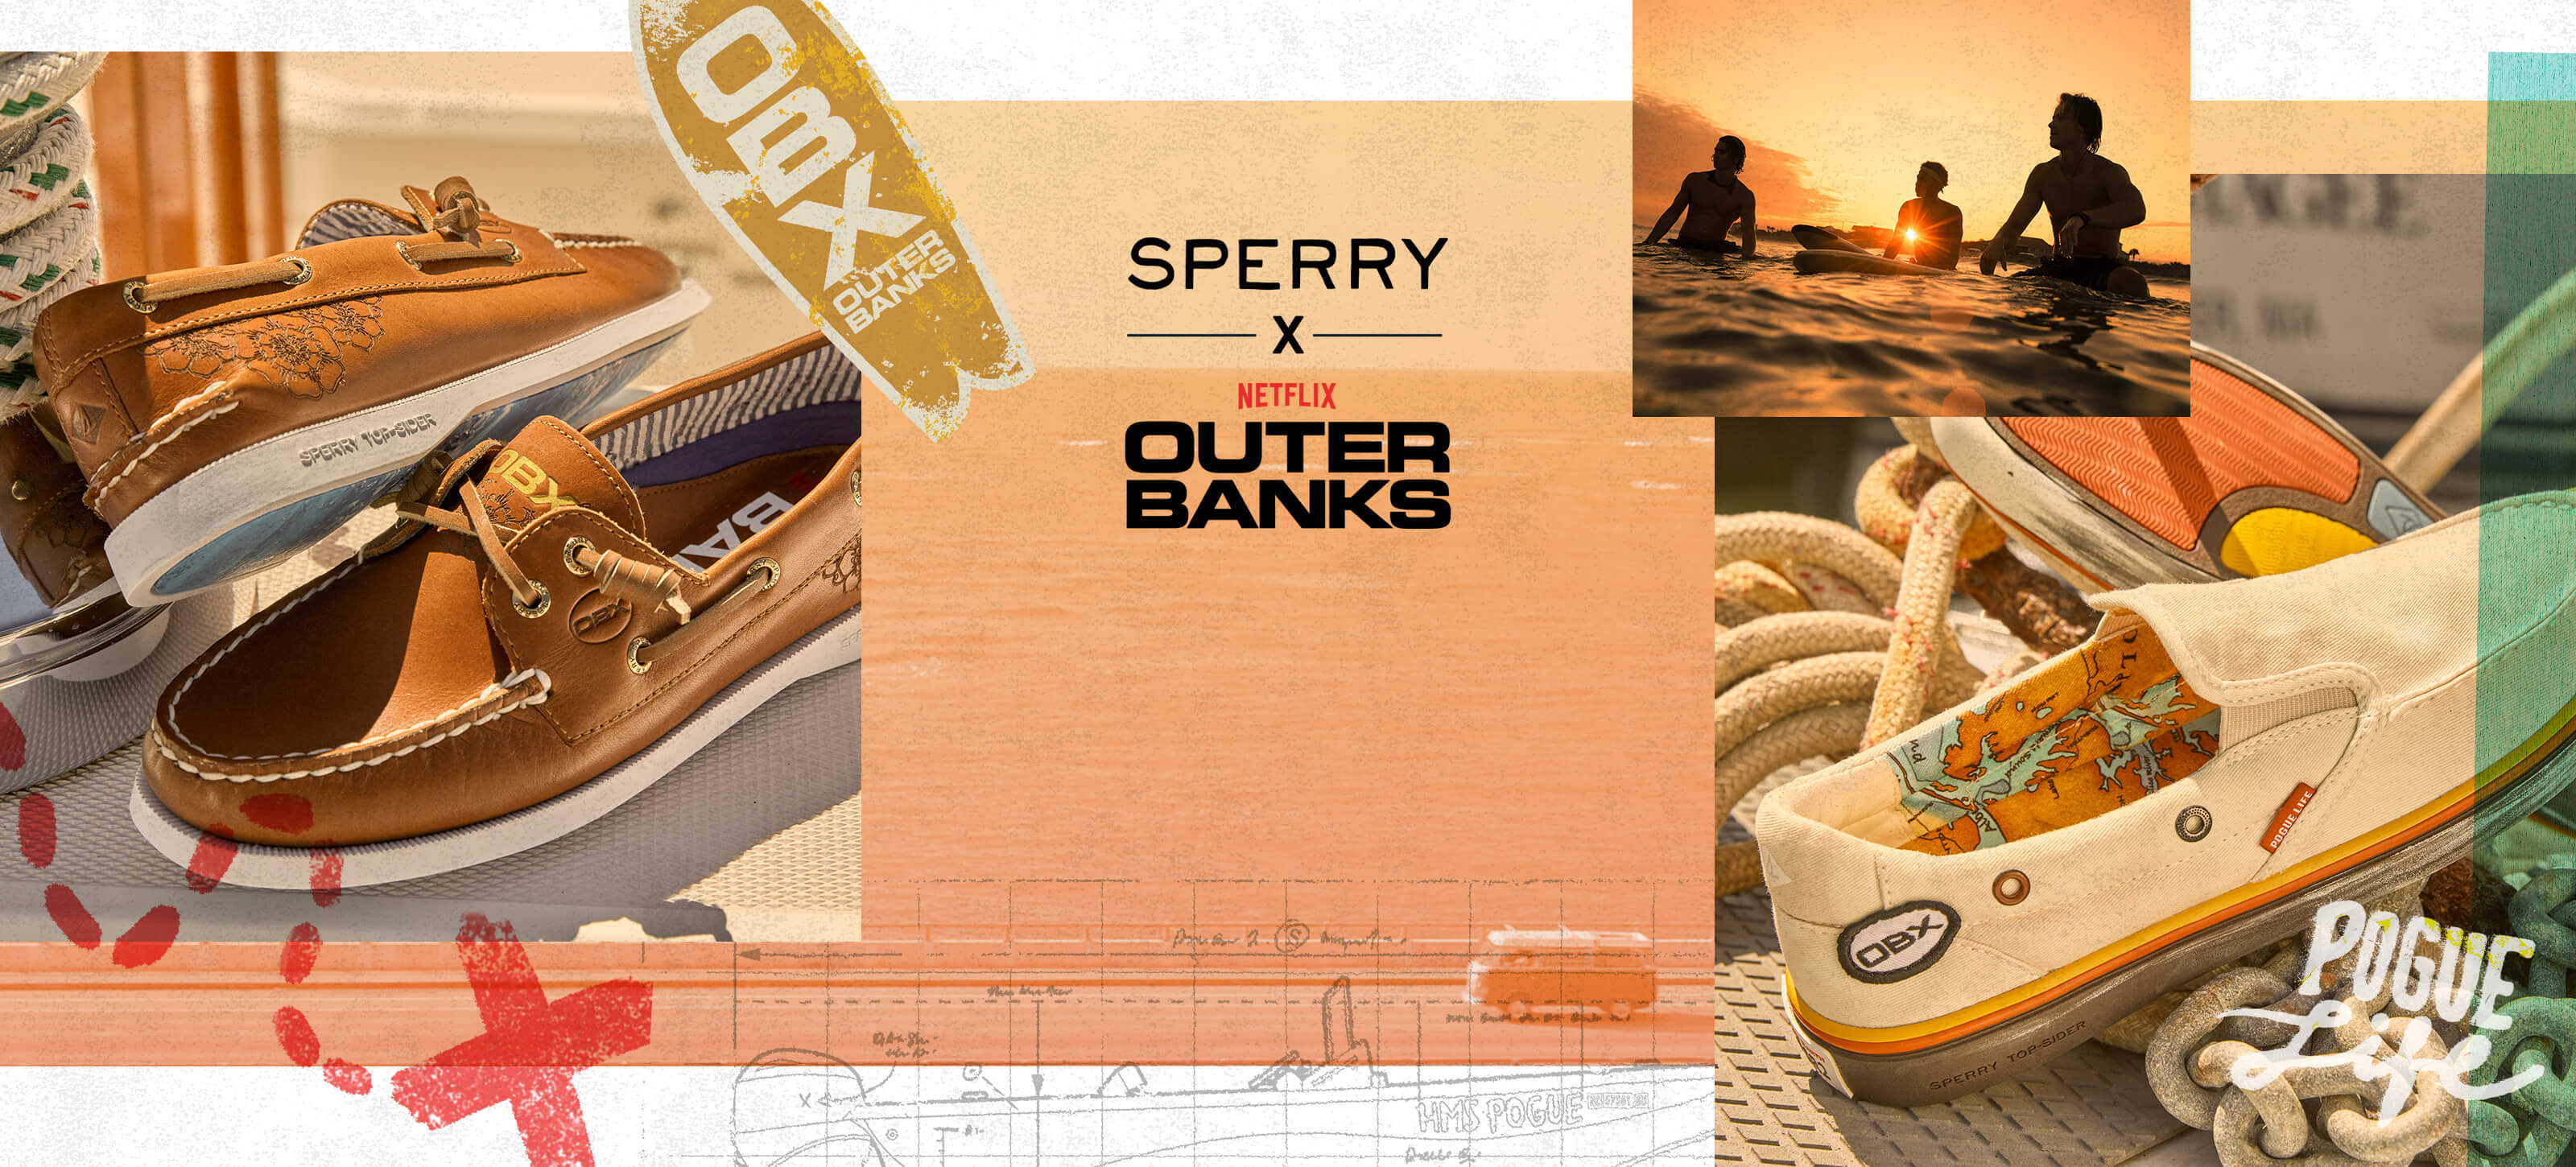 Collage of outer banks images on a map.